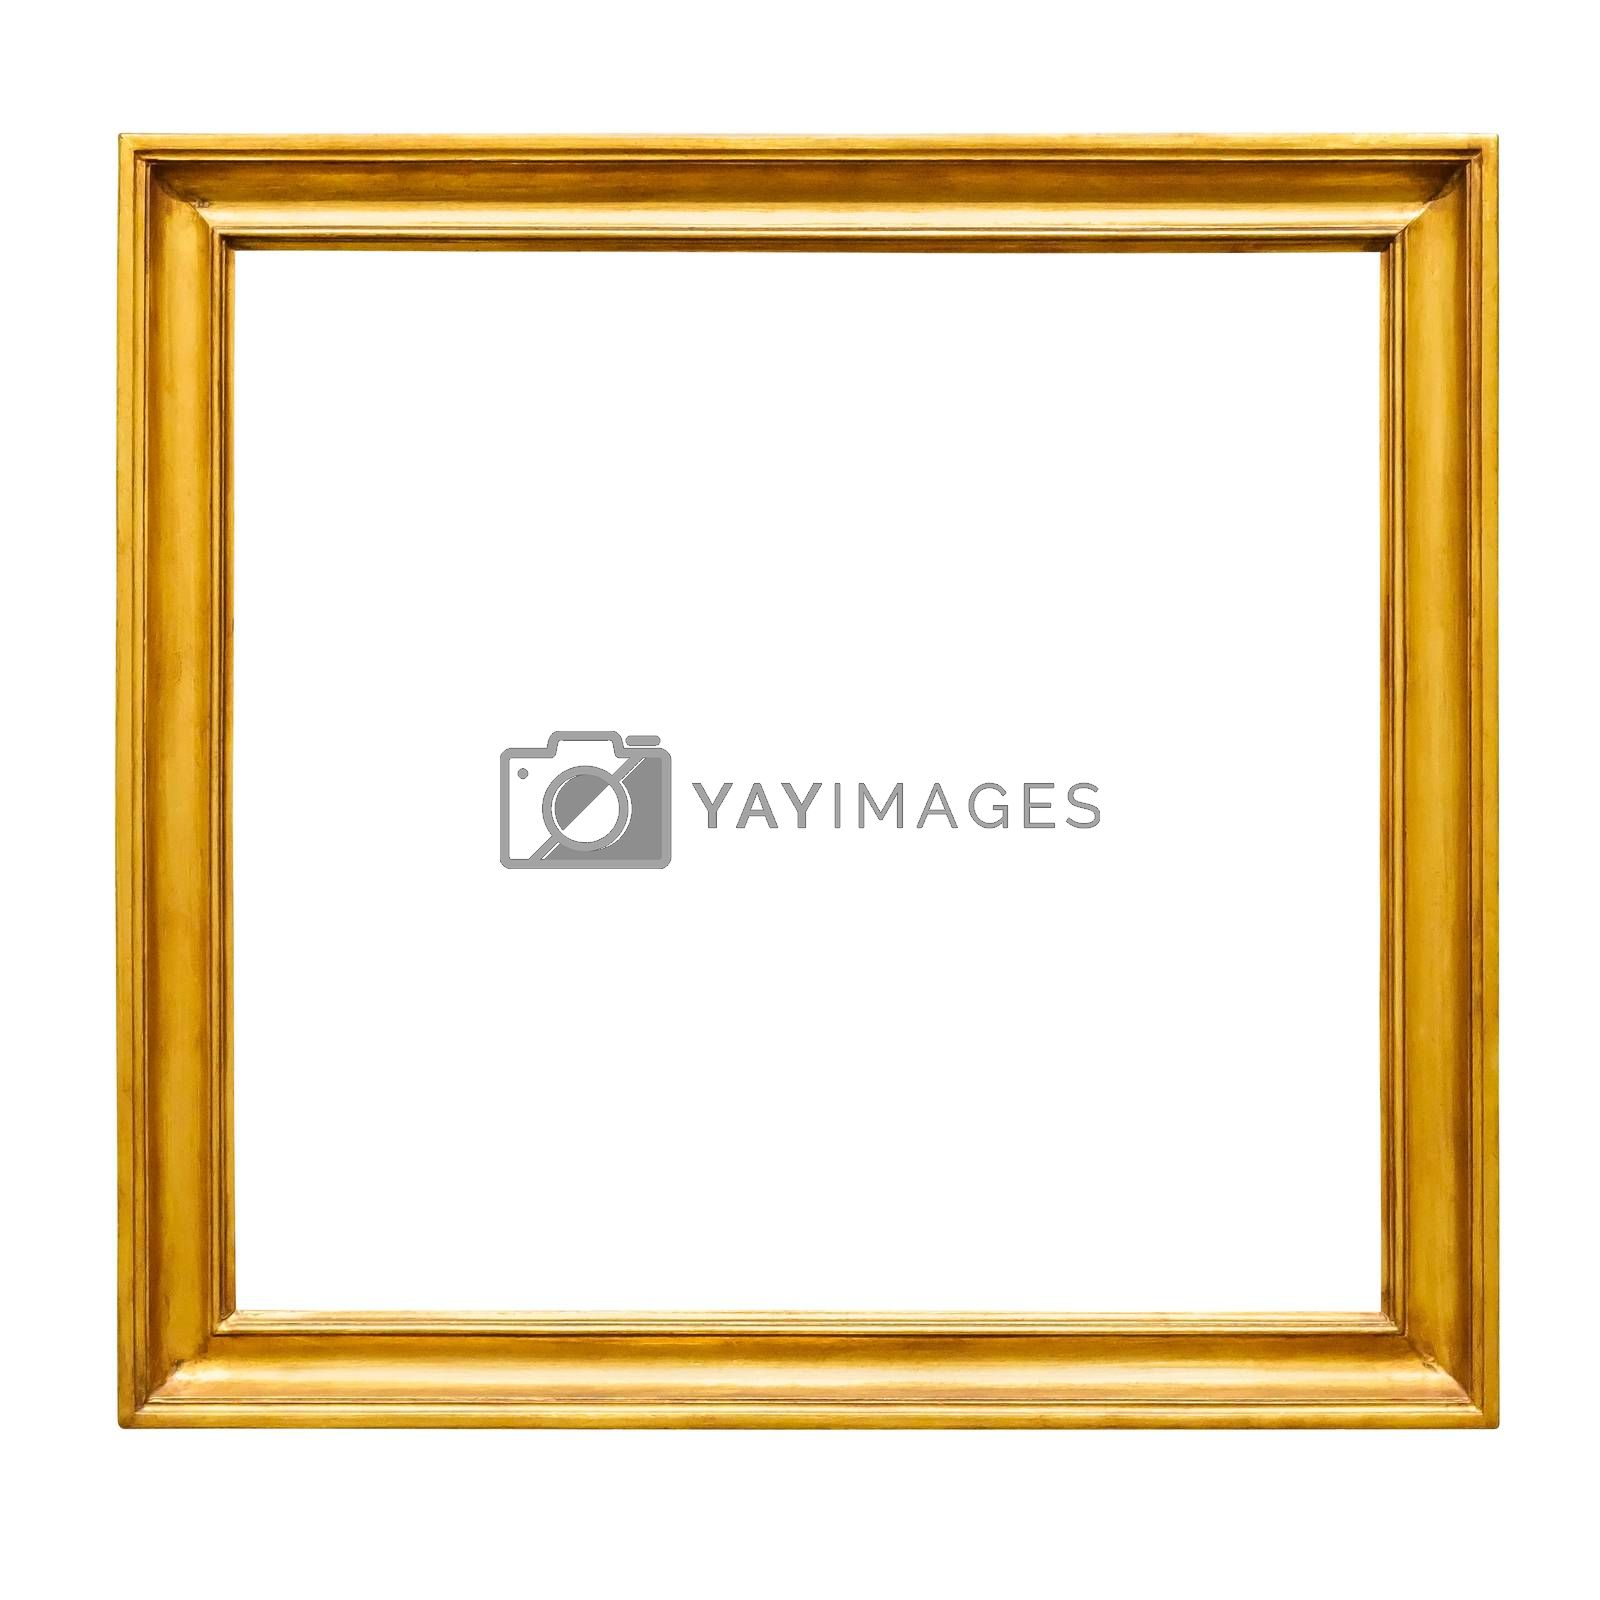 Square decorative golden picture frame isolated on white background with clipping path